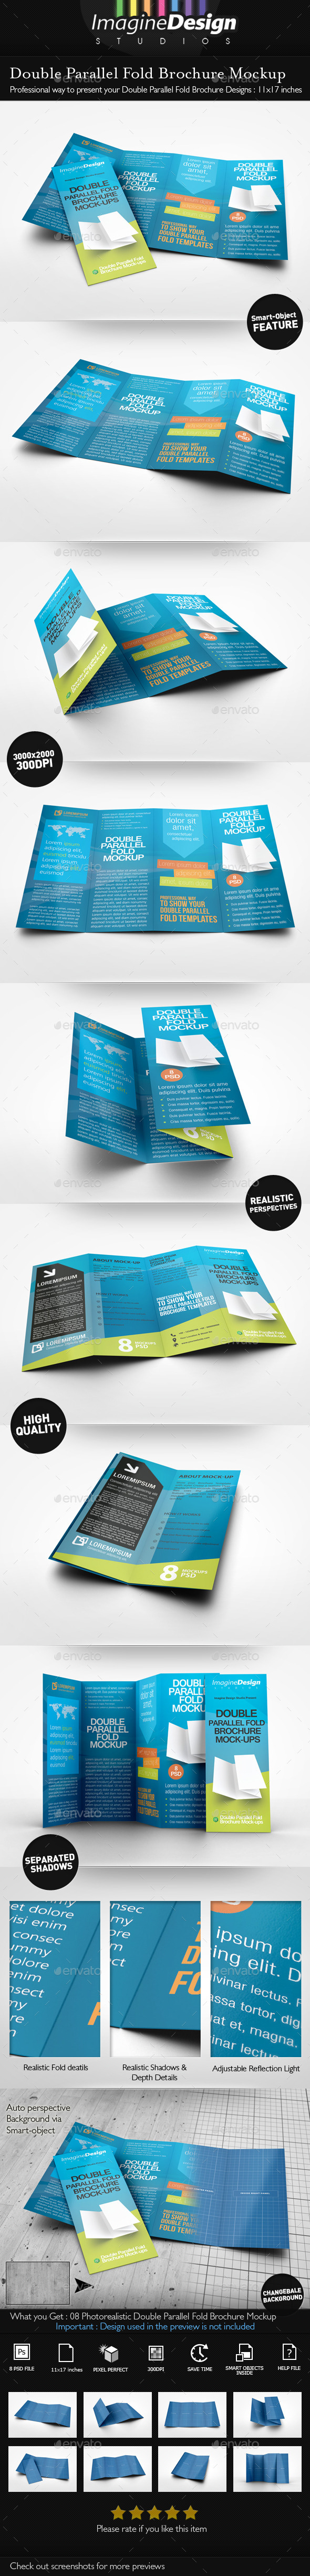 GraphicRiver Double Parallel Fold Brochure Mockup 9942412